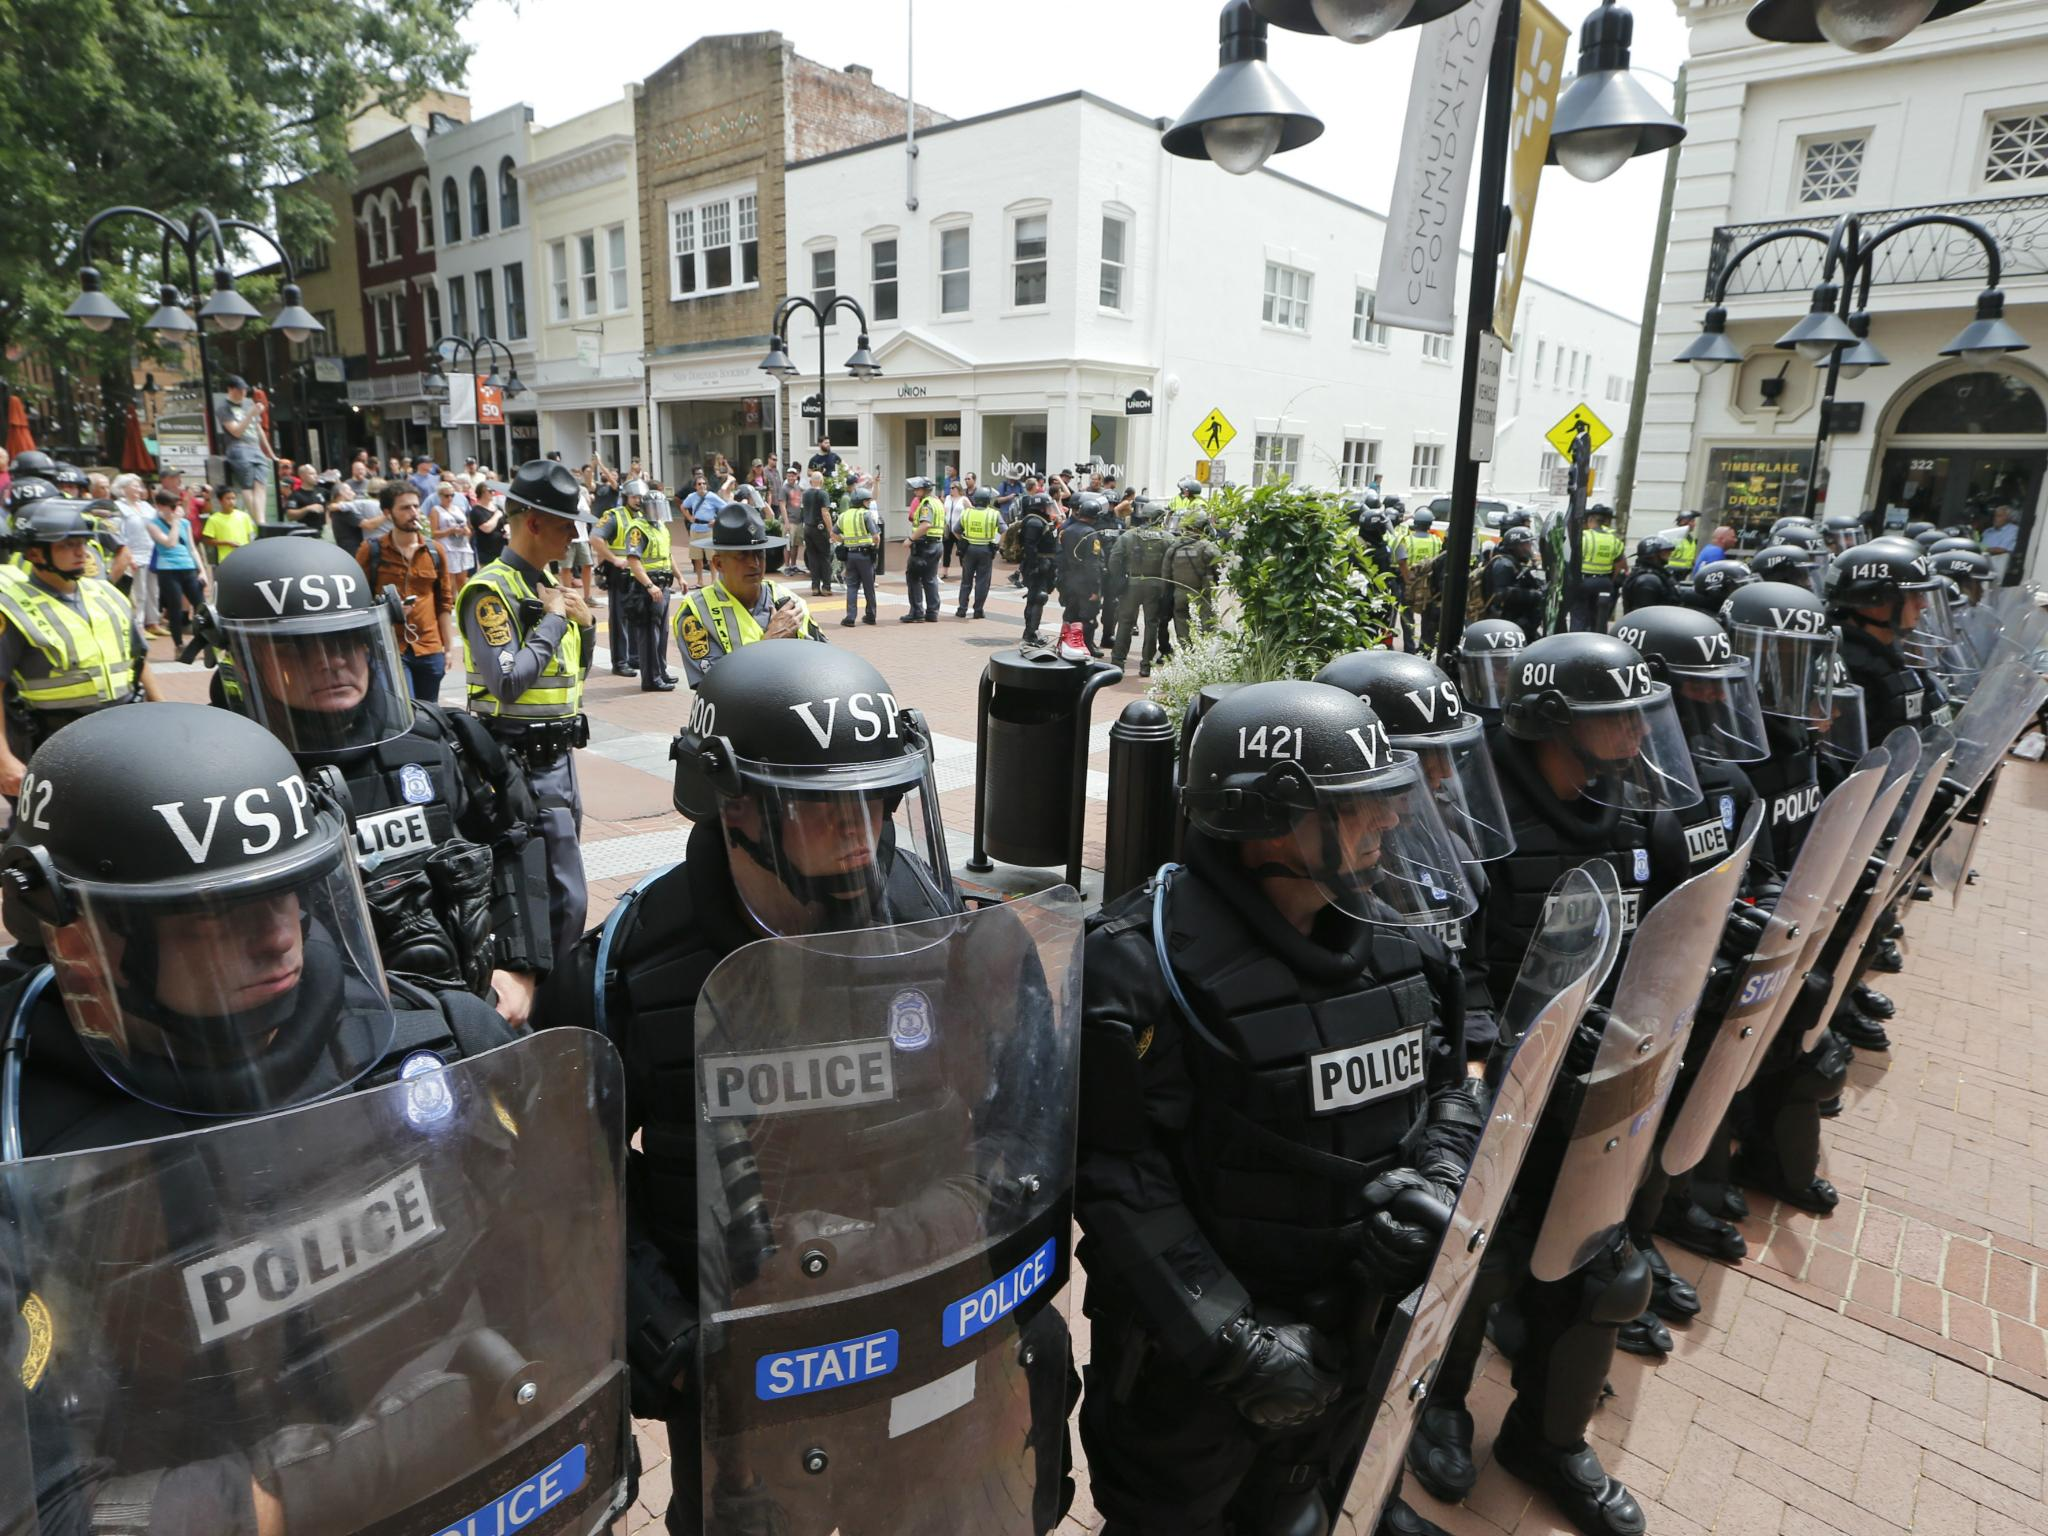 State police stand ready in riot gear